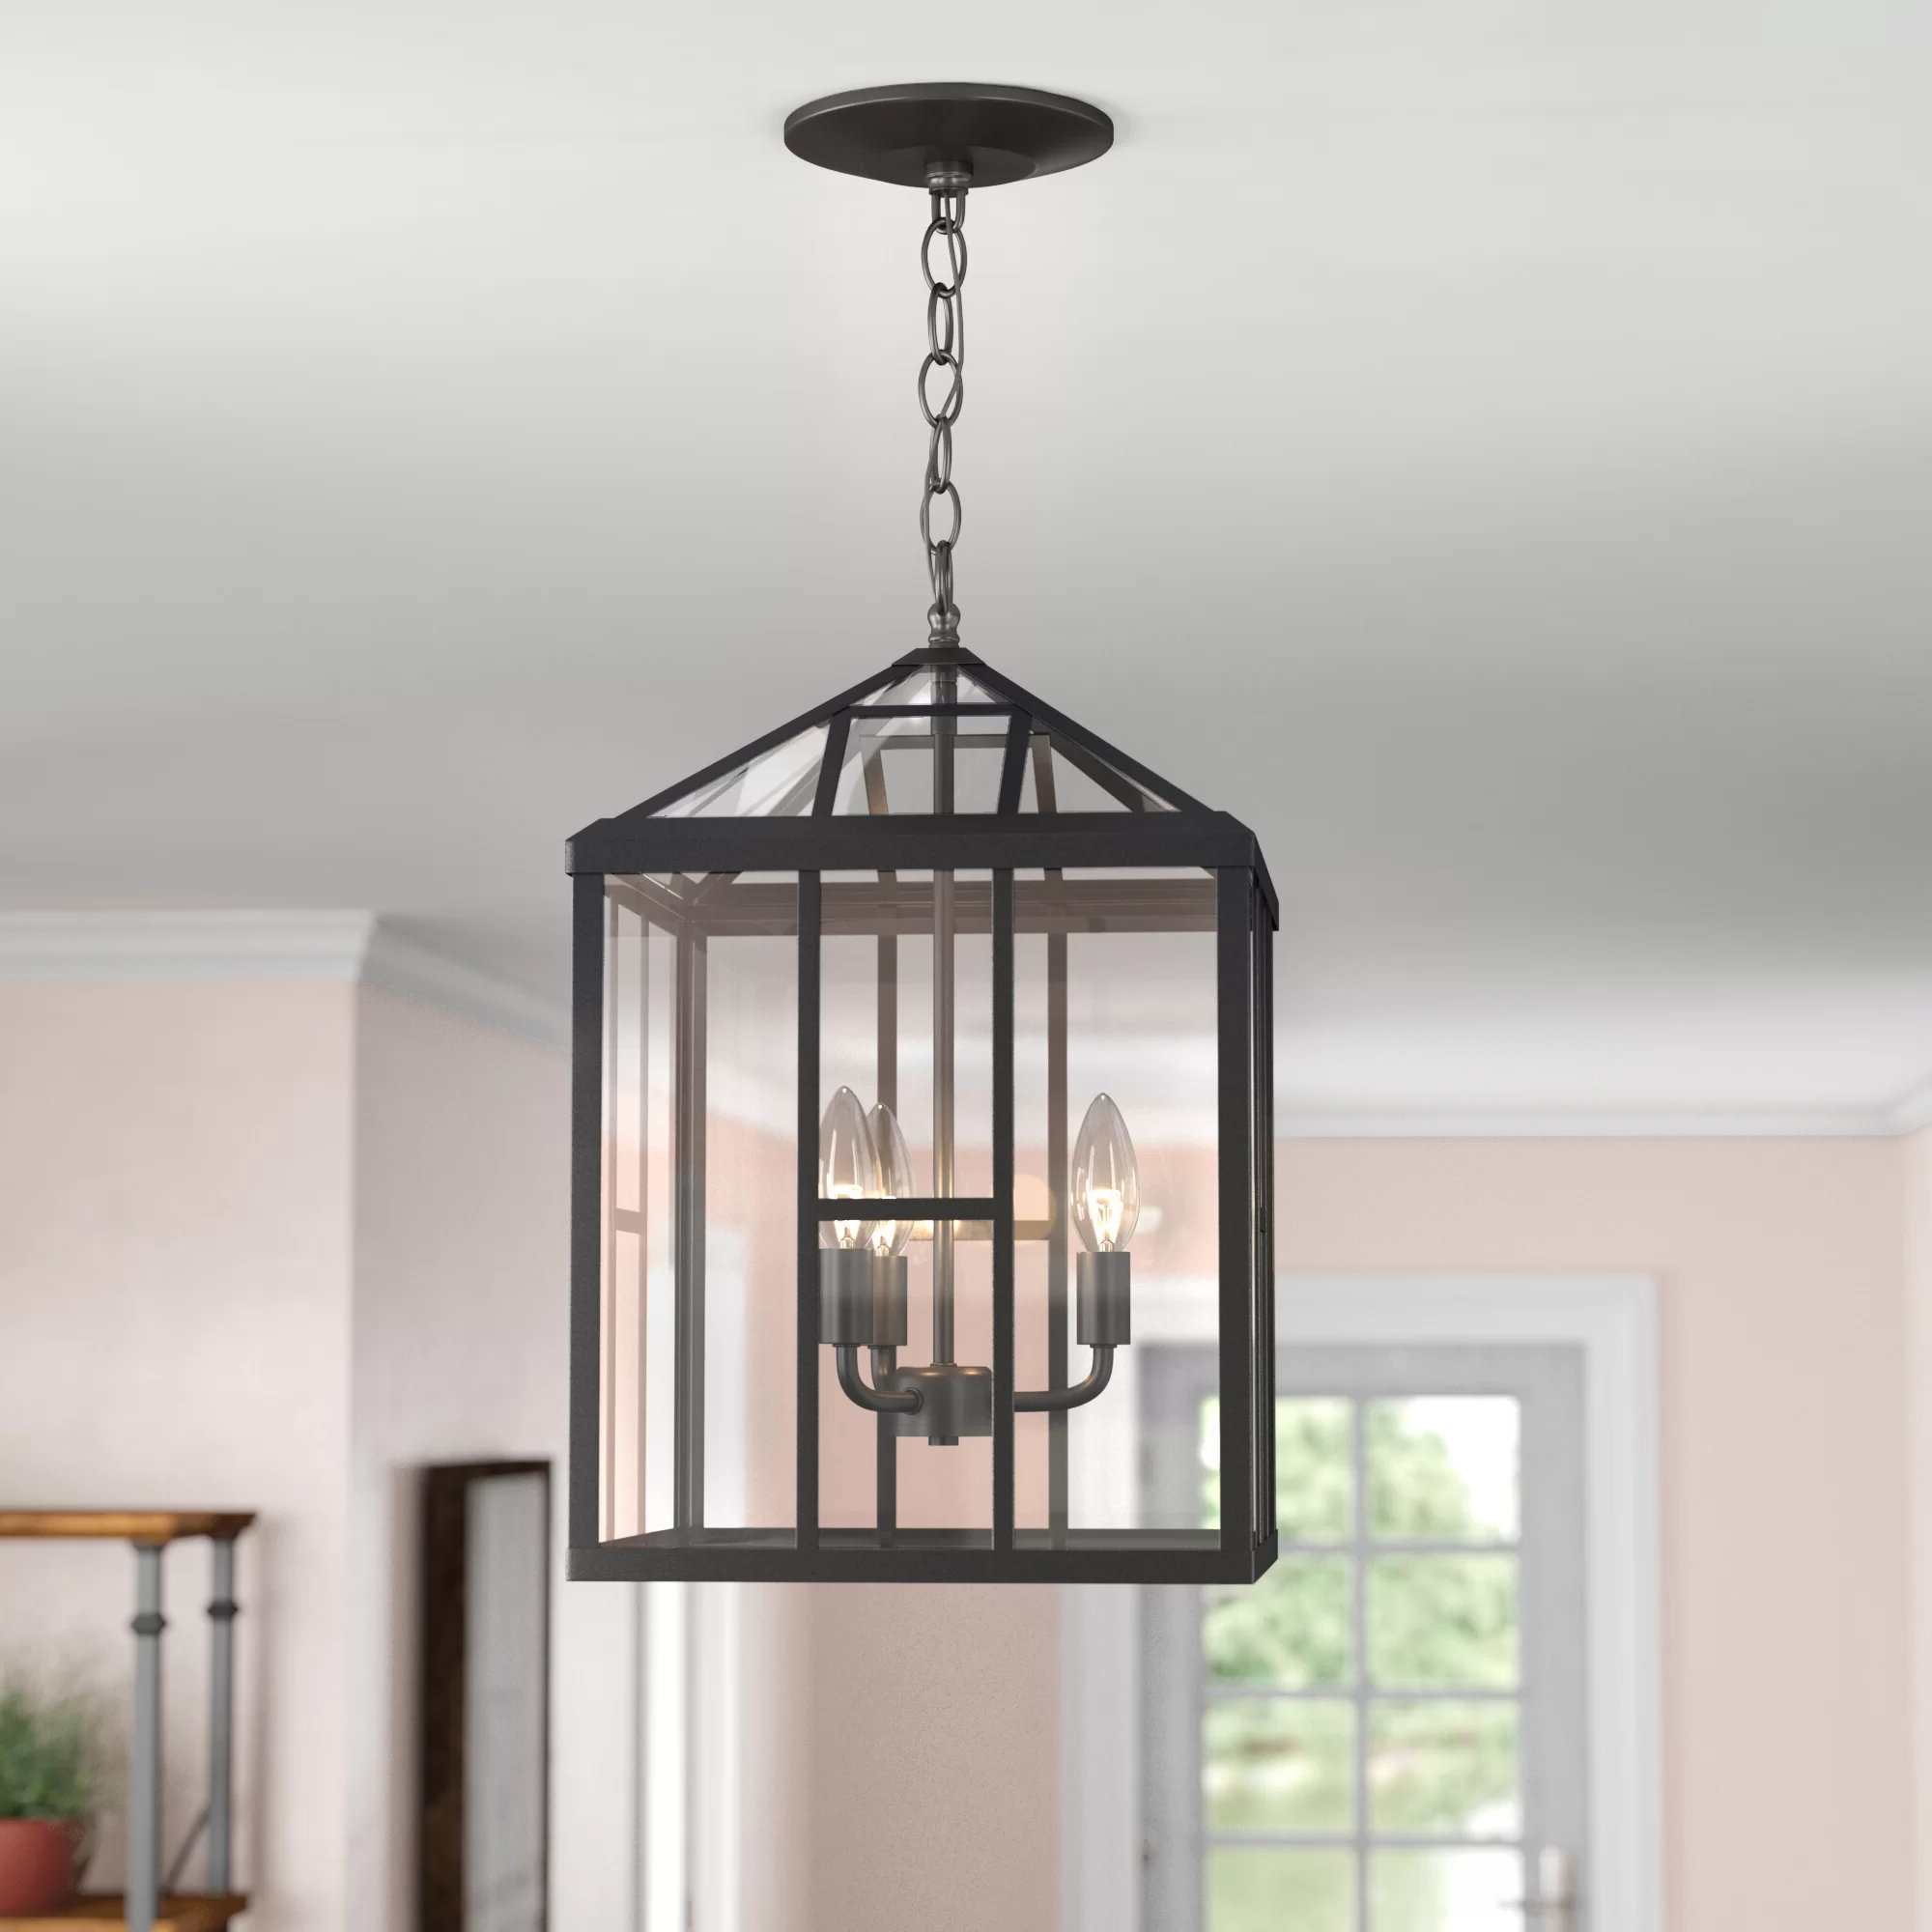 Lindsey 4 Light Drum Chandeliers Intended For Current Farmhouse & Rustic Gracie Oaks Chandeliers (View 17 of 20)